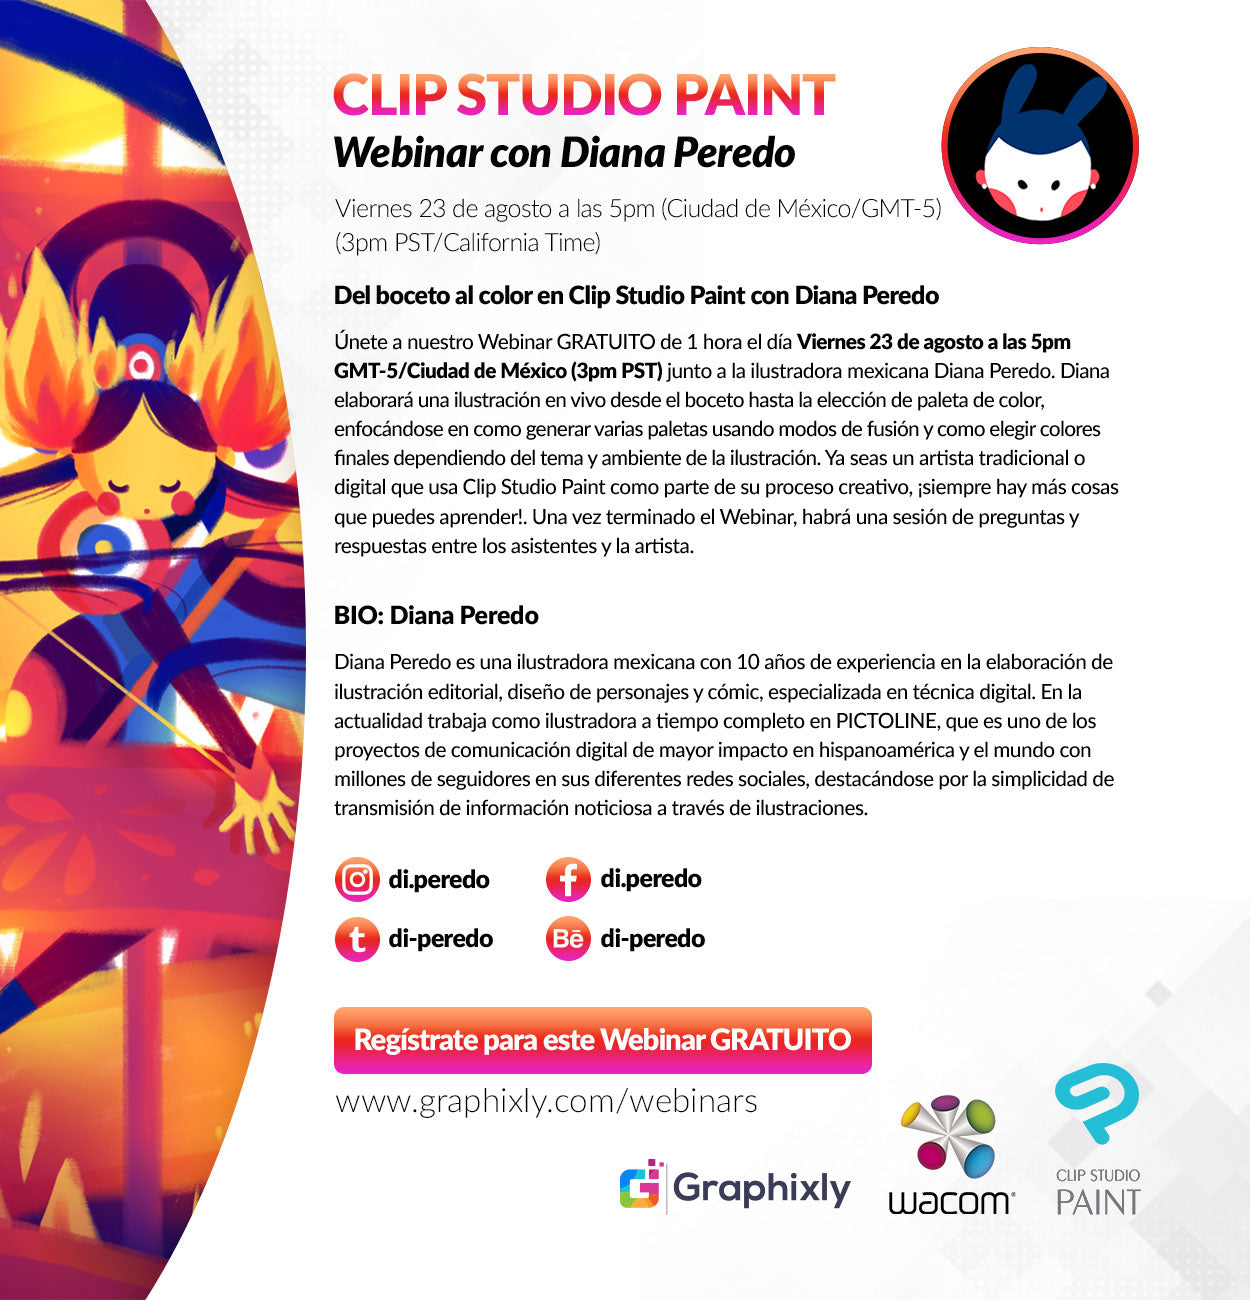 Anime Expo Friday July 6 Clip Studio Paint Live Drawing